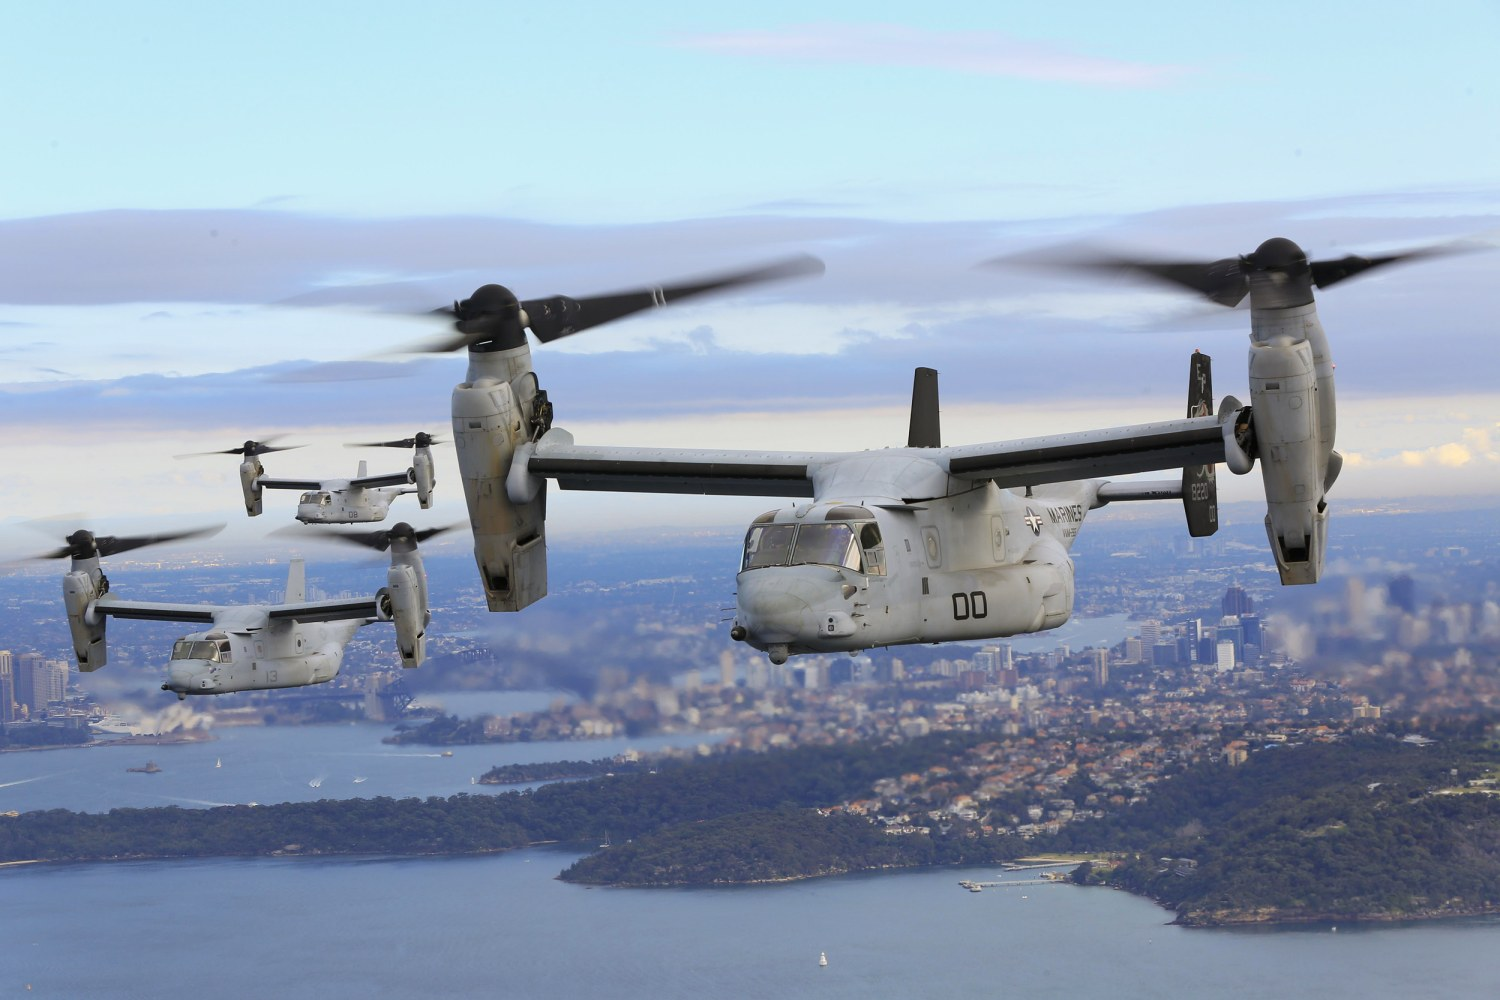 airplane helicopter hybrid with Rescue Efforts Suspended 3 Marines Missing After Osprey Crash Near N789921 on Elytron Vtol Air Taxi Concept 05 30 2017 further Rockth furthermore Alternative Military History additionally SovietRetro40Ultralight 390238989 likewise The U S Armys New Battle Blimp.